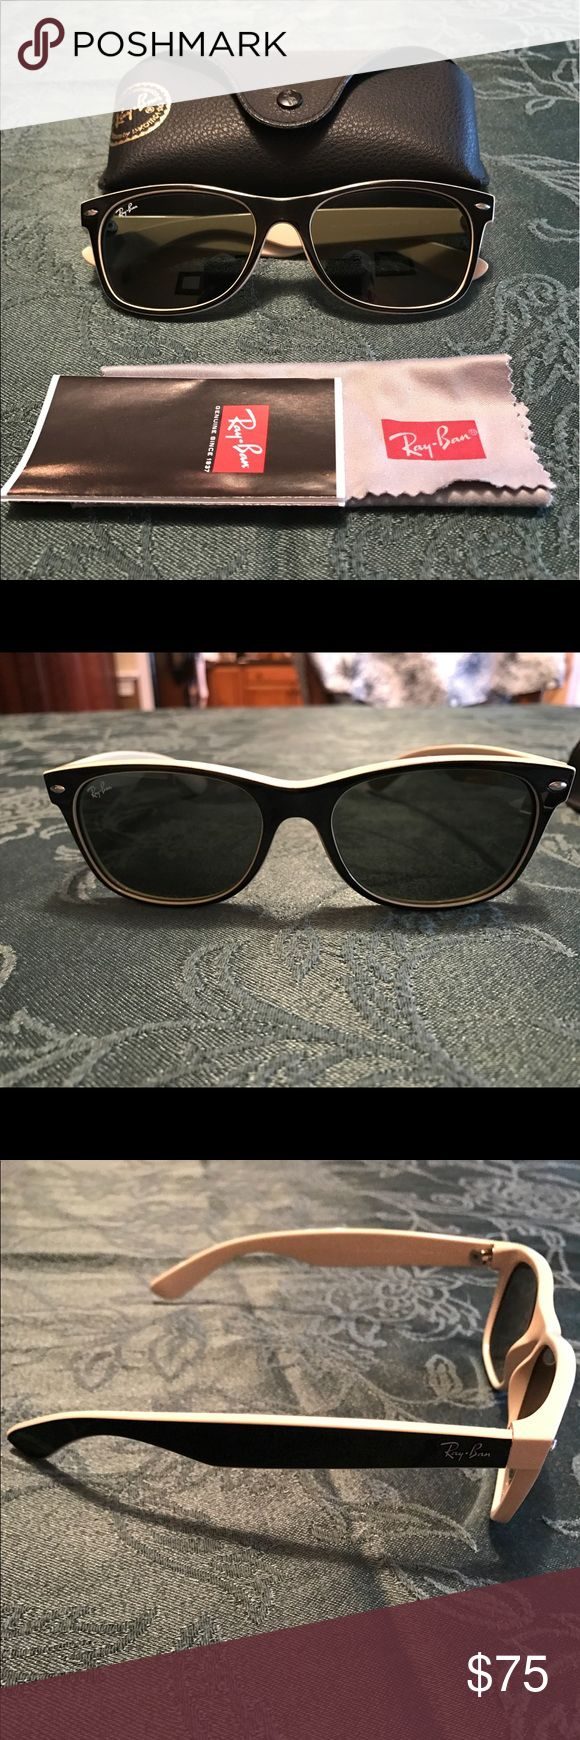 Ray Ban Wayfarer Sunglasses (Black & Tan) Gently used, excellent condition! Comes with original case and cleaning cloth. Ray-Ban Accessories Sunglasses